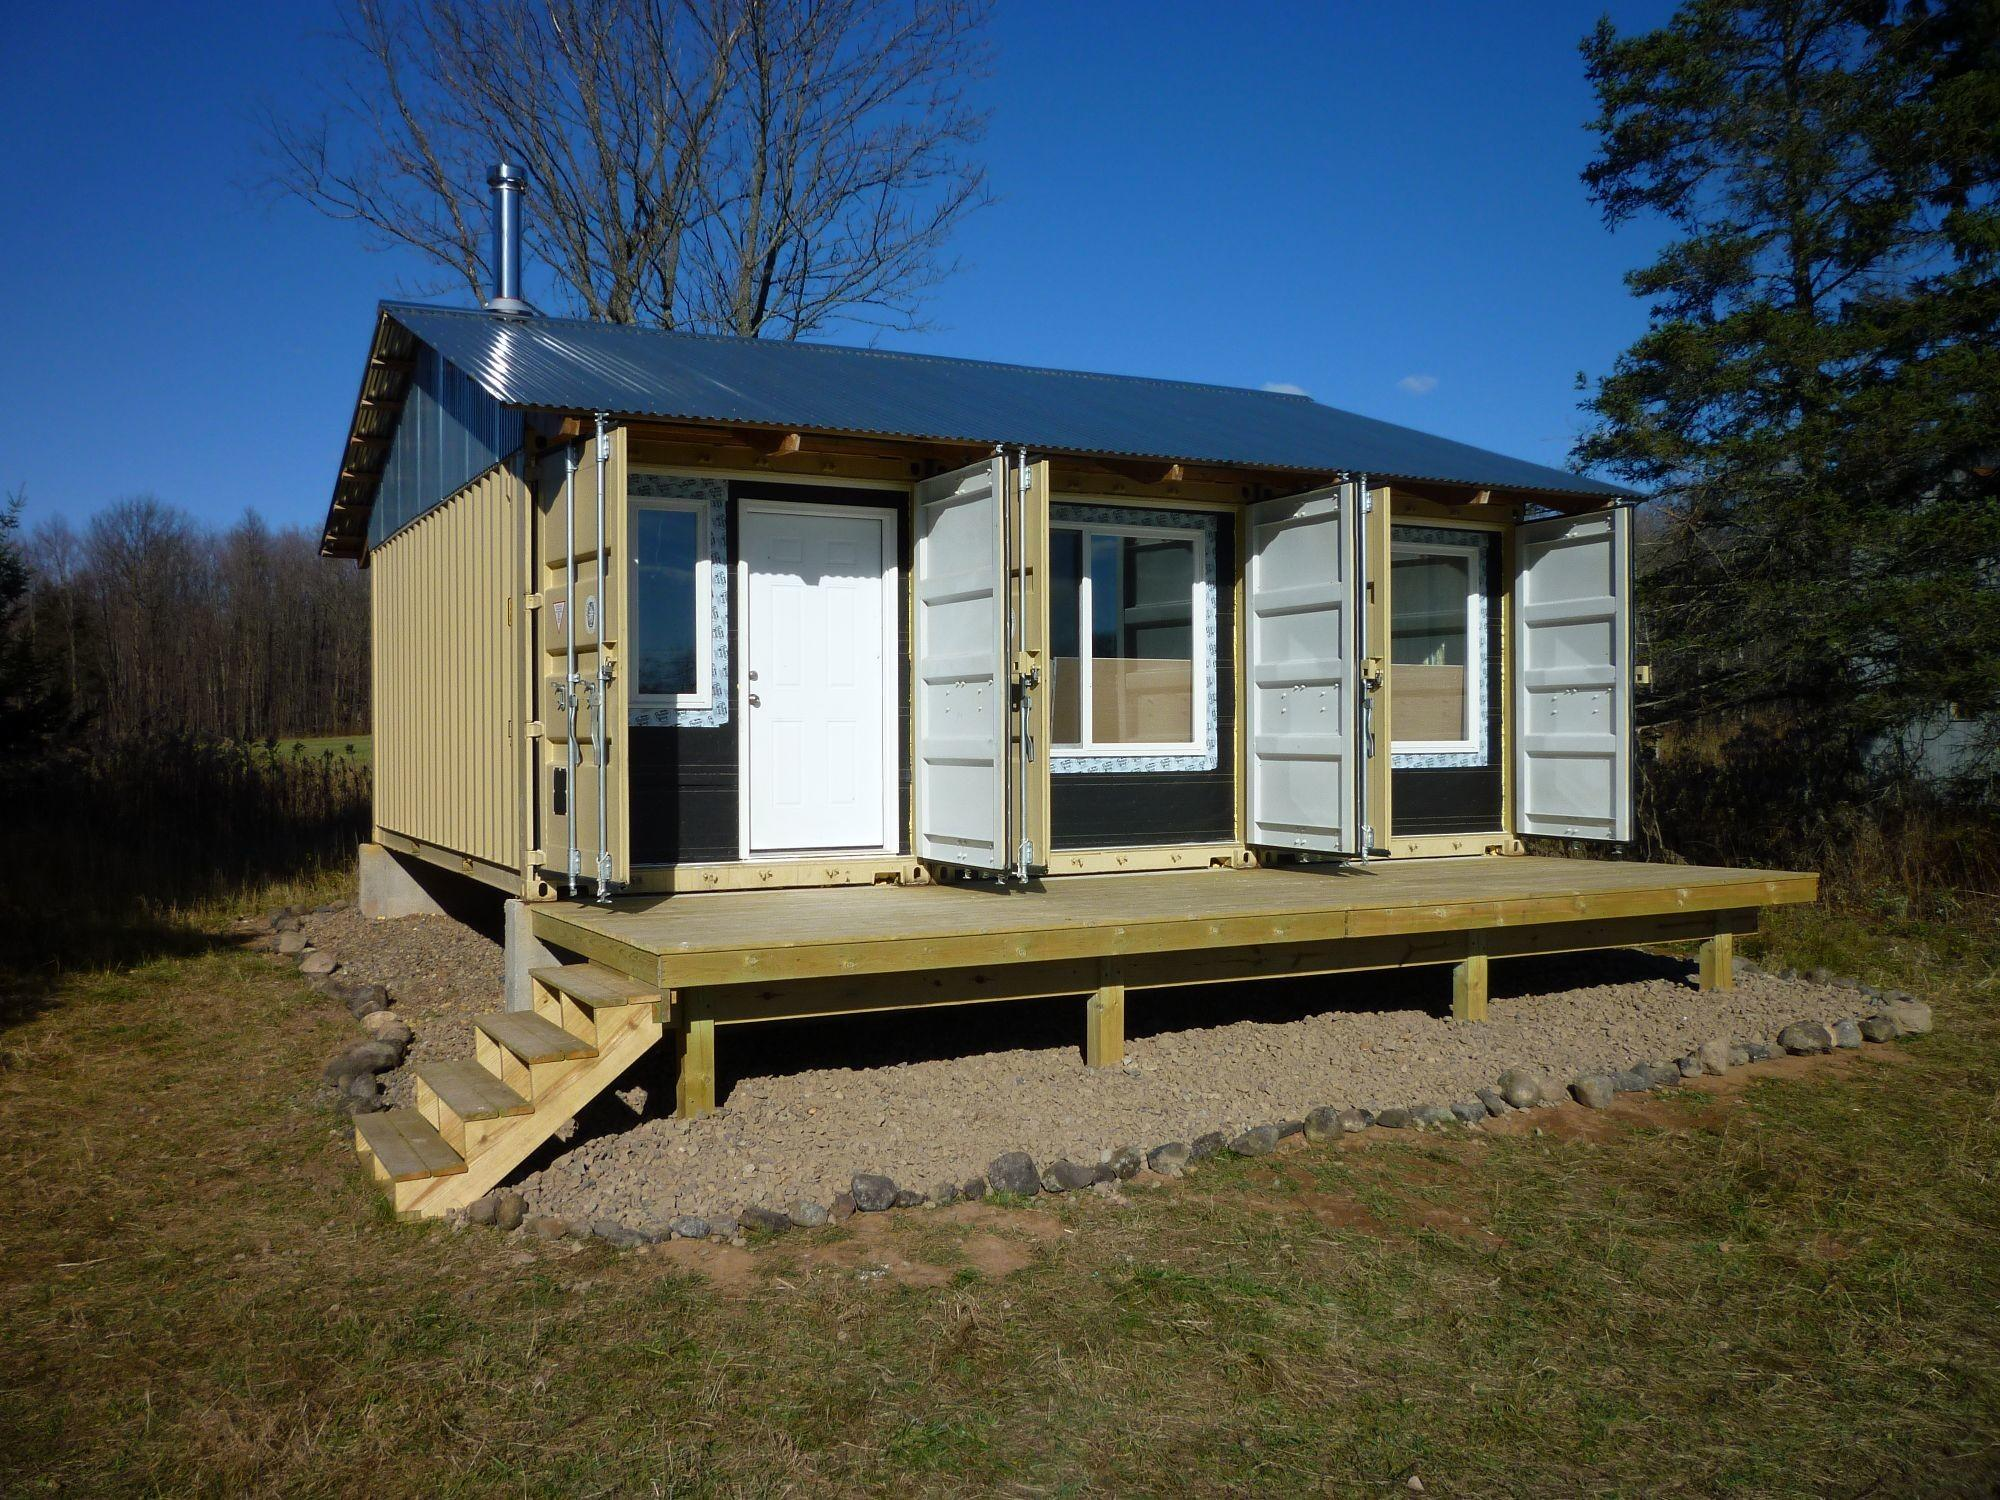 Deck Landscaping Tin Can Cabin